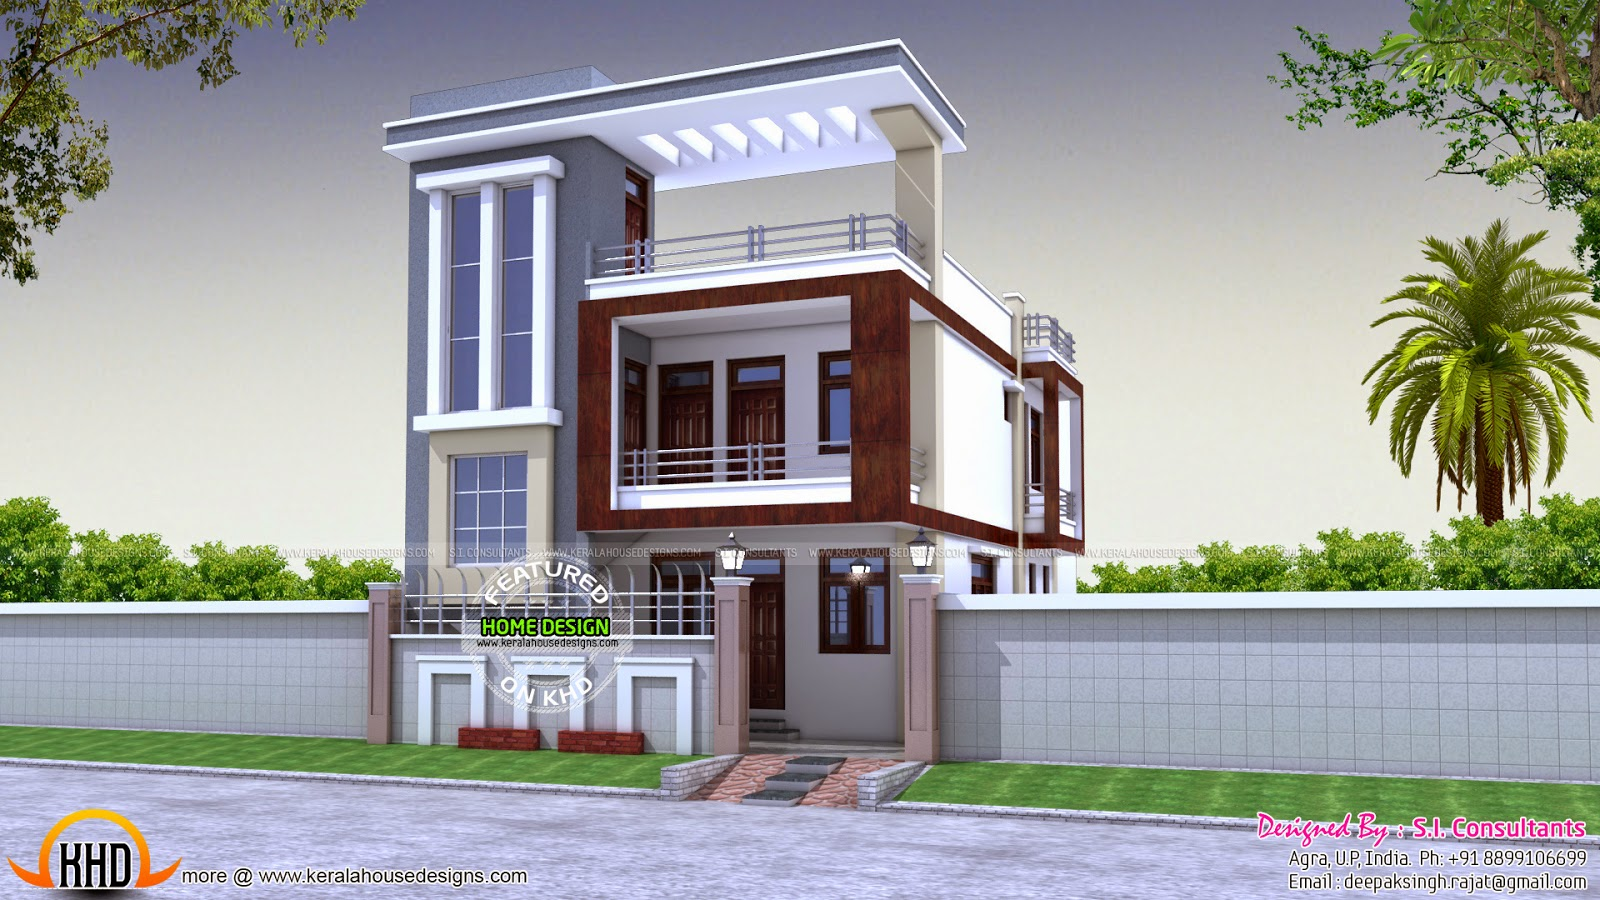 30x50 home plan kerala home design and floor plans Indian modern home design images